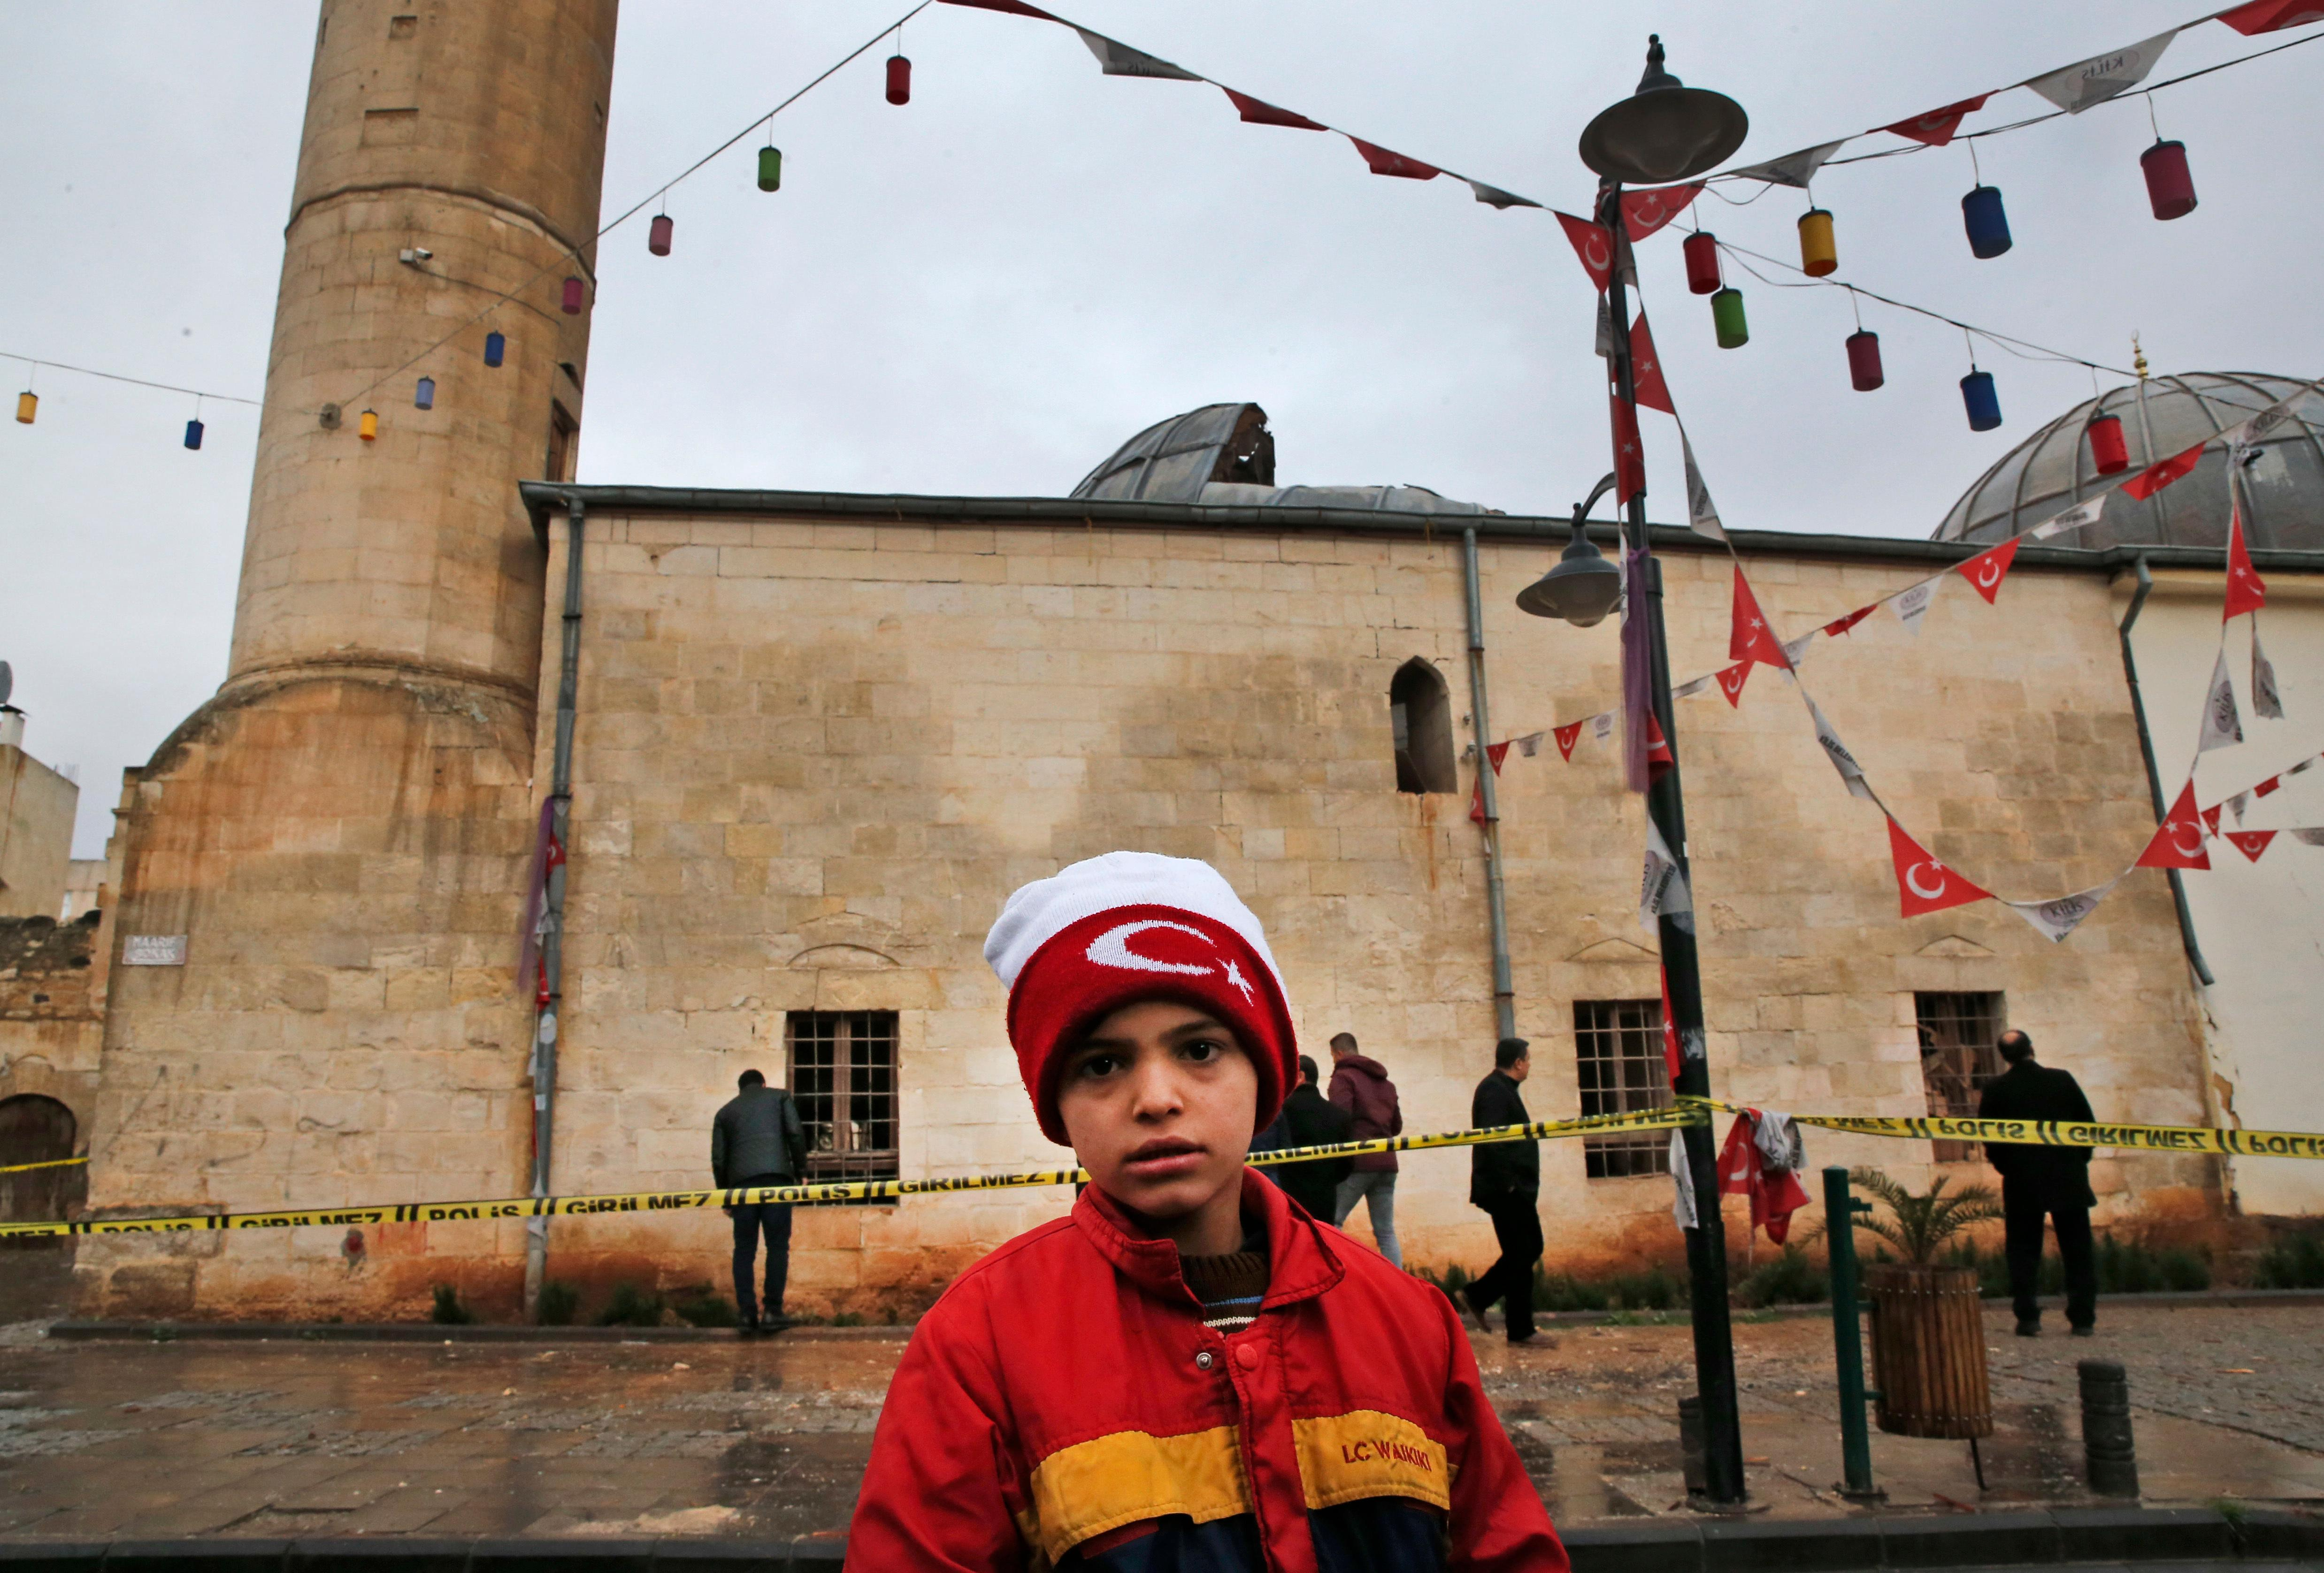 A boy stands in front of Calik mosque damaged on a rocket attack Wednesday night, in the town of Kilis, Turkey, near the border with Syria, Thursday, Jan. 25, 2018, after two rockets fired from inside Syria wounded at least 13 people when they hit a house and the mosque during evening prayers. This is the latest in a series of rocket attacks against the Turkish border town since Ankara launched a military offensive into Afrin. (AP Photo/Lefteris Pitarakis)